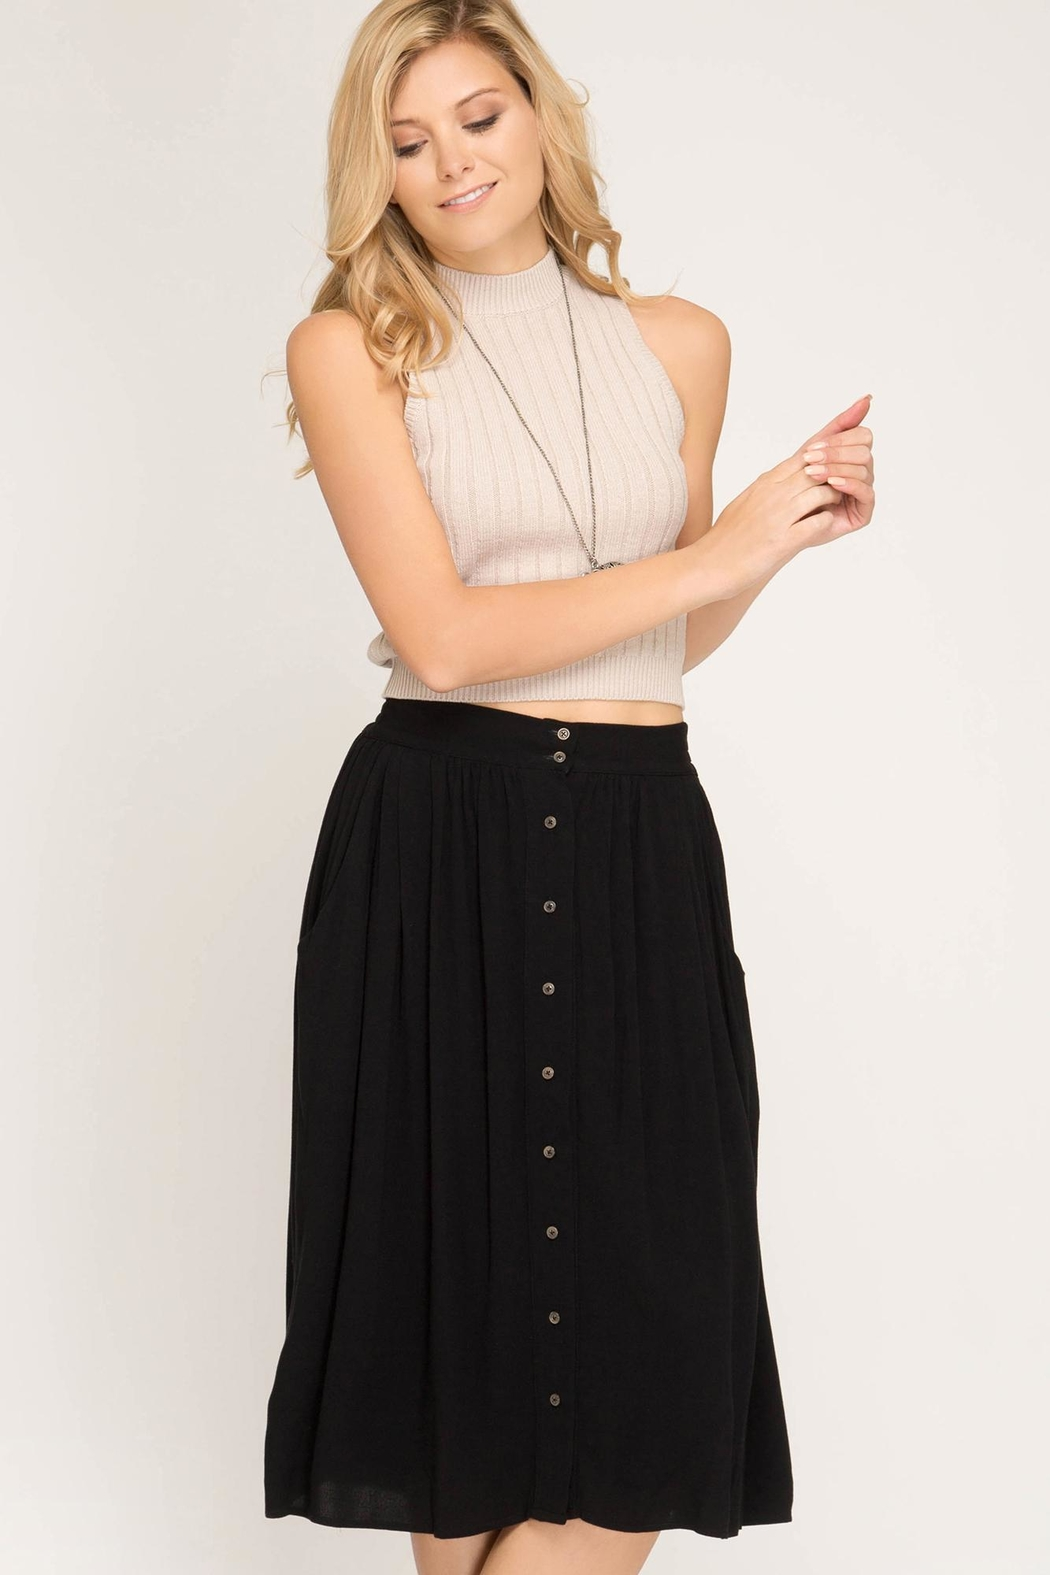 She + Sky Button Down Skirt - Main Image